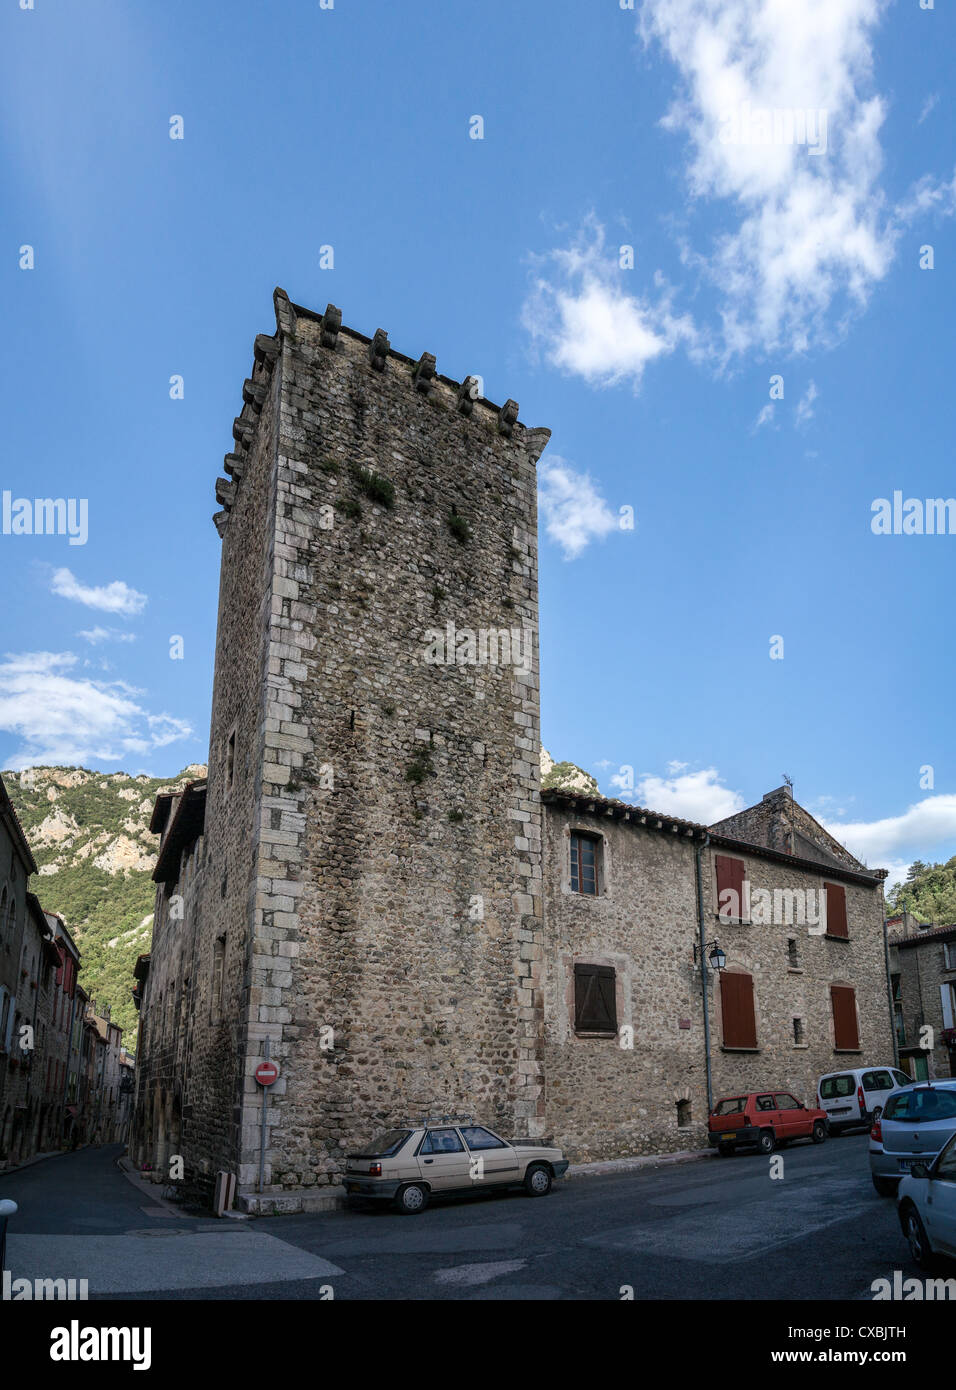 Medieval town Villefranche-de-Conflent in French Pyrenees - Stock Image